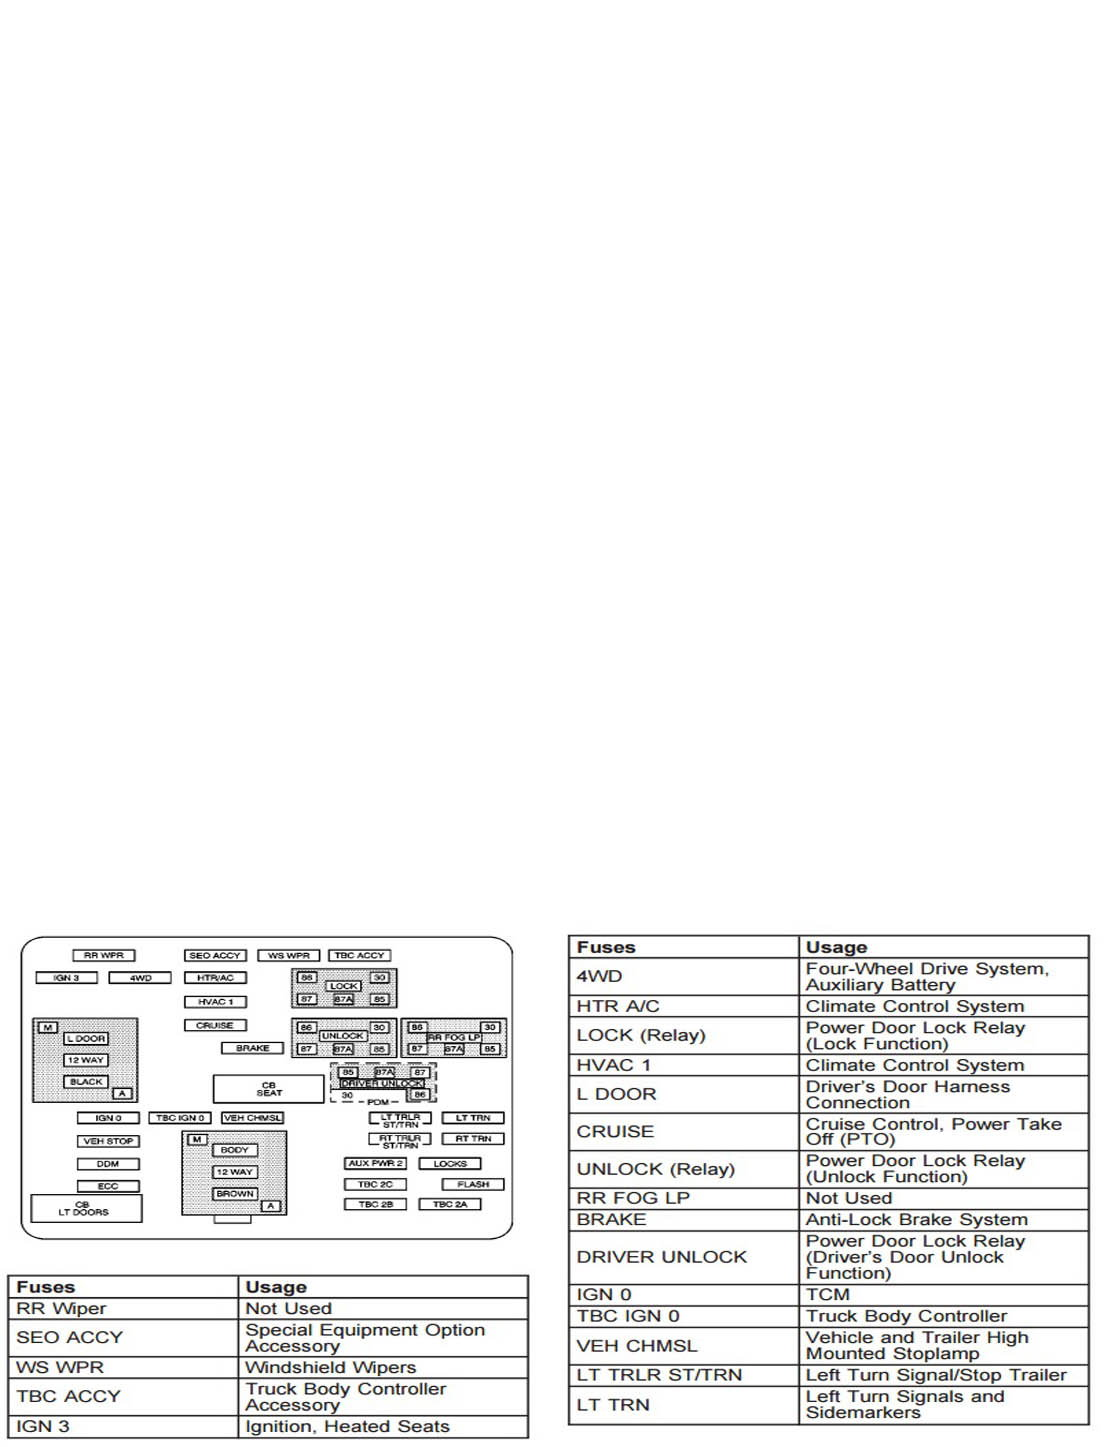 chevrolet silverado gmt800 1999 2006 fuse box diagram chevroletforum instrument panel fuse box diagram and application